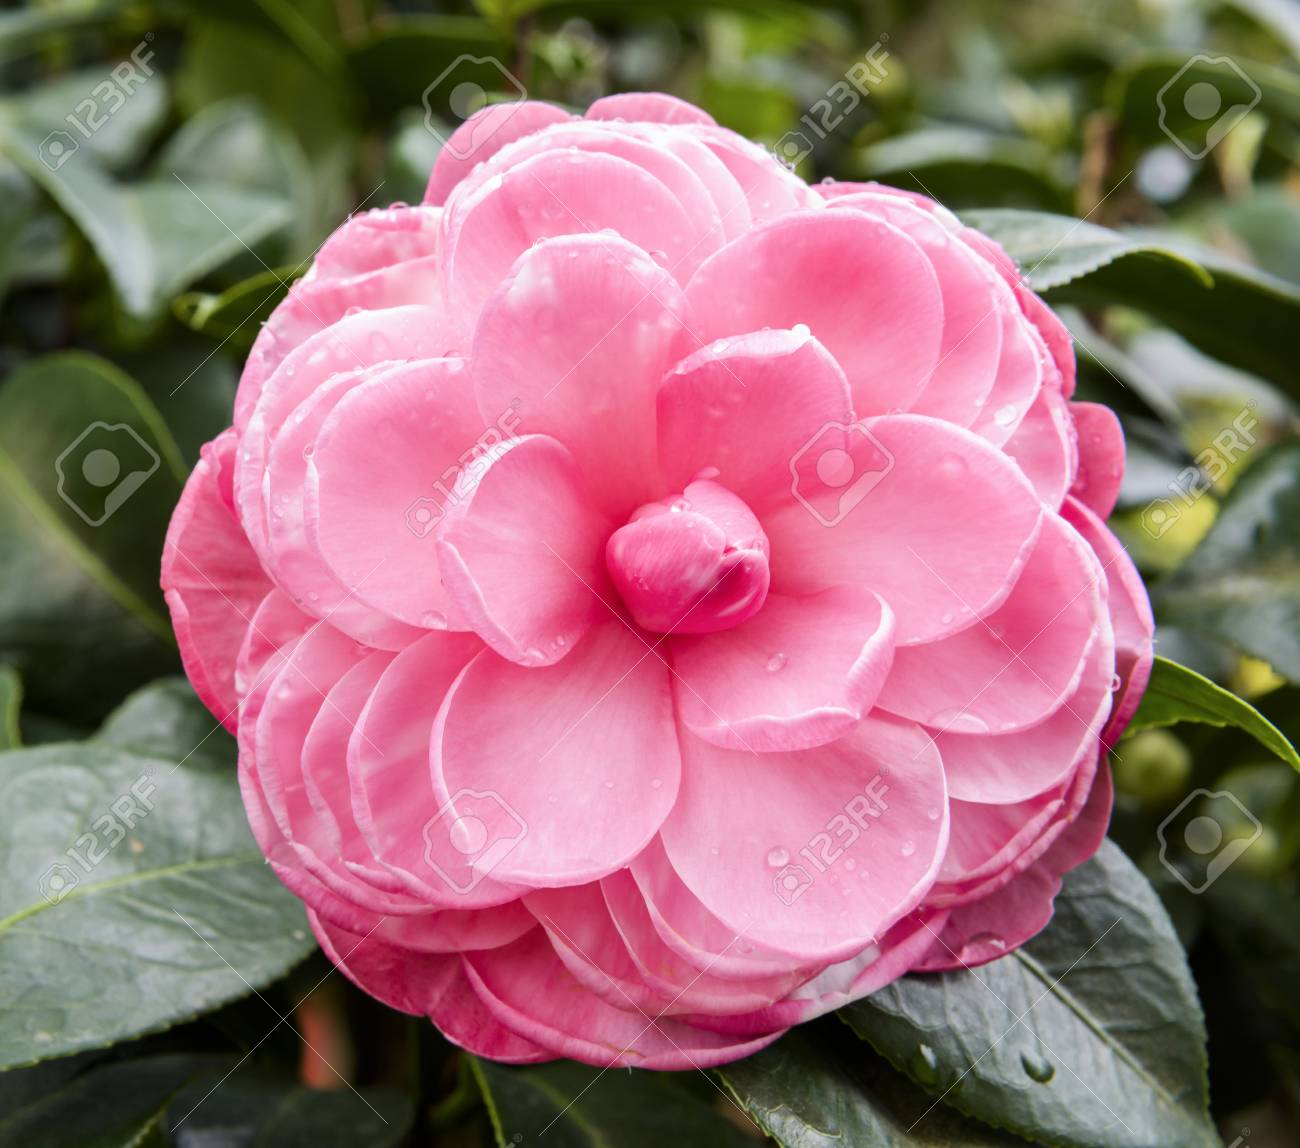 Pink with white camellia flowers beautiful pink with white flowers pink with white camellia flowers beautiful pink with white flowers blooming in the garden in mightylinksfo